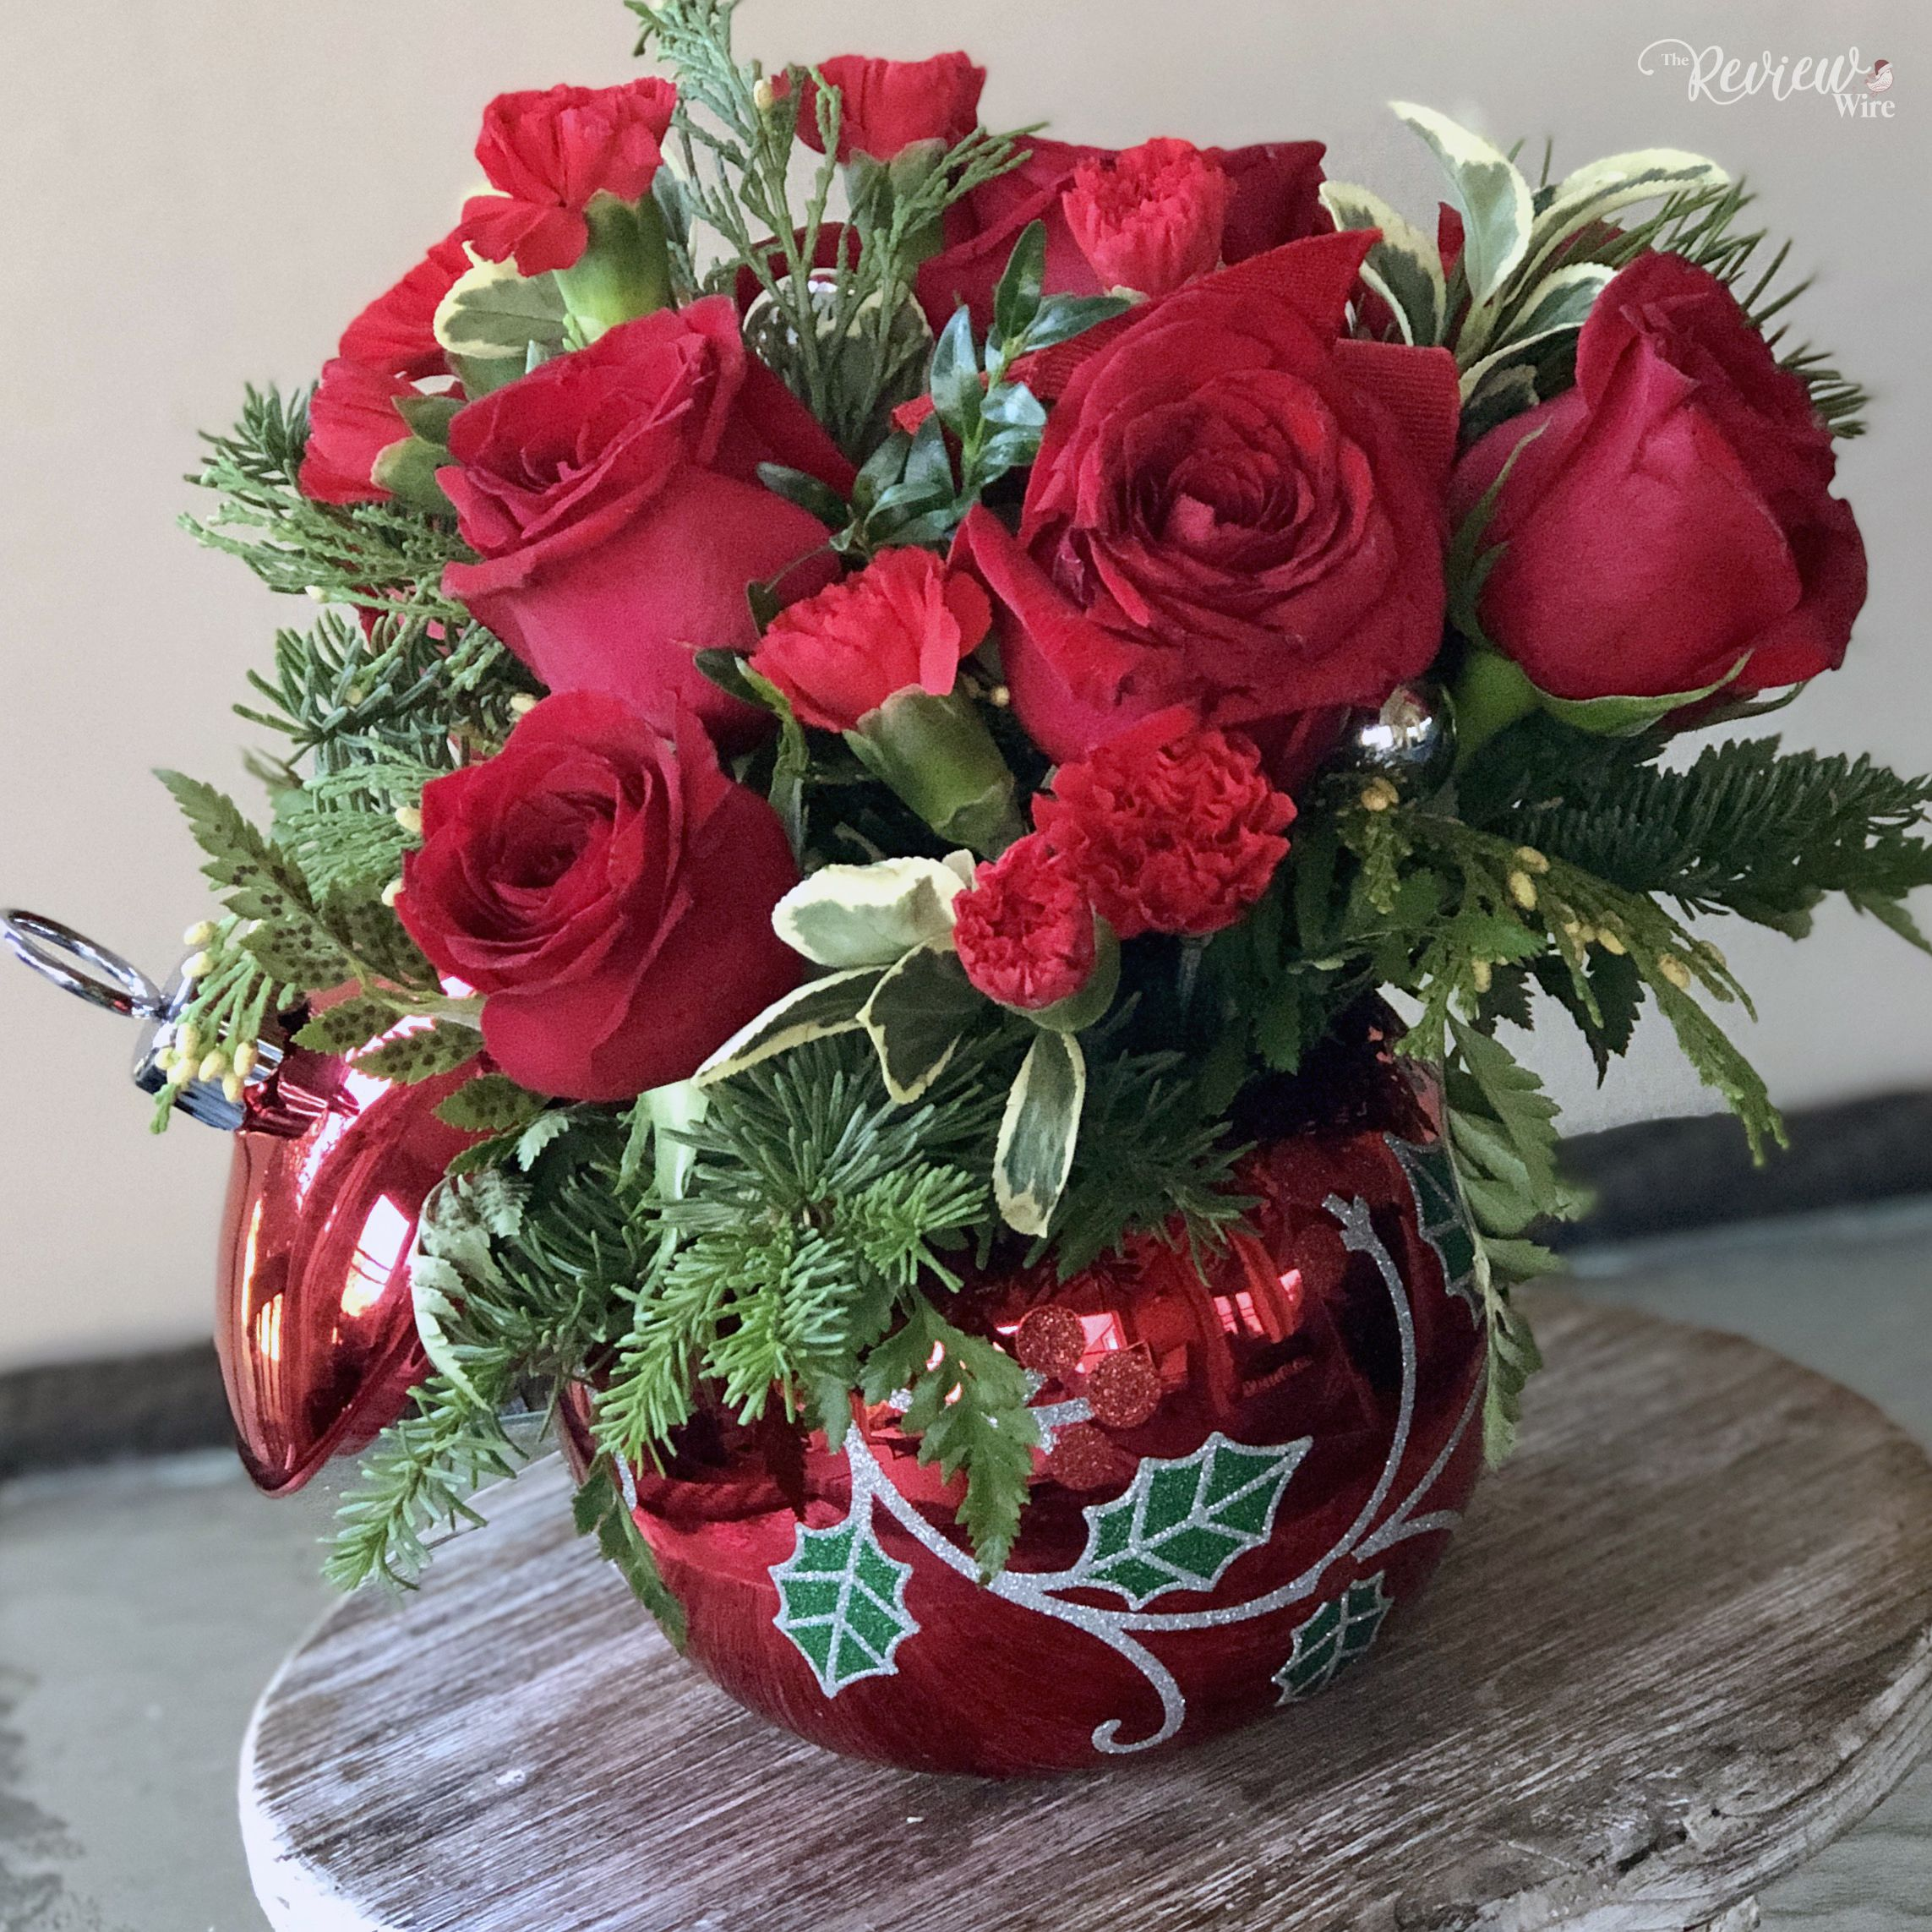 Brighten up a dreary day with a winter bouquet from